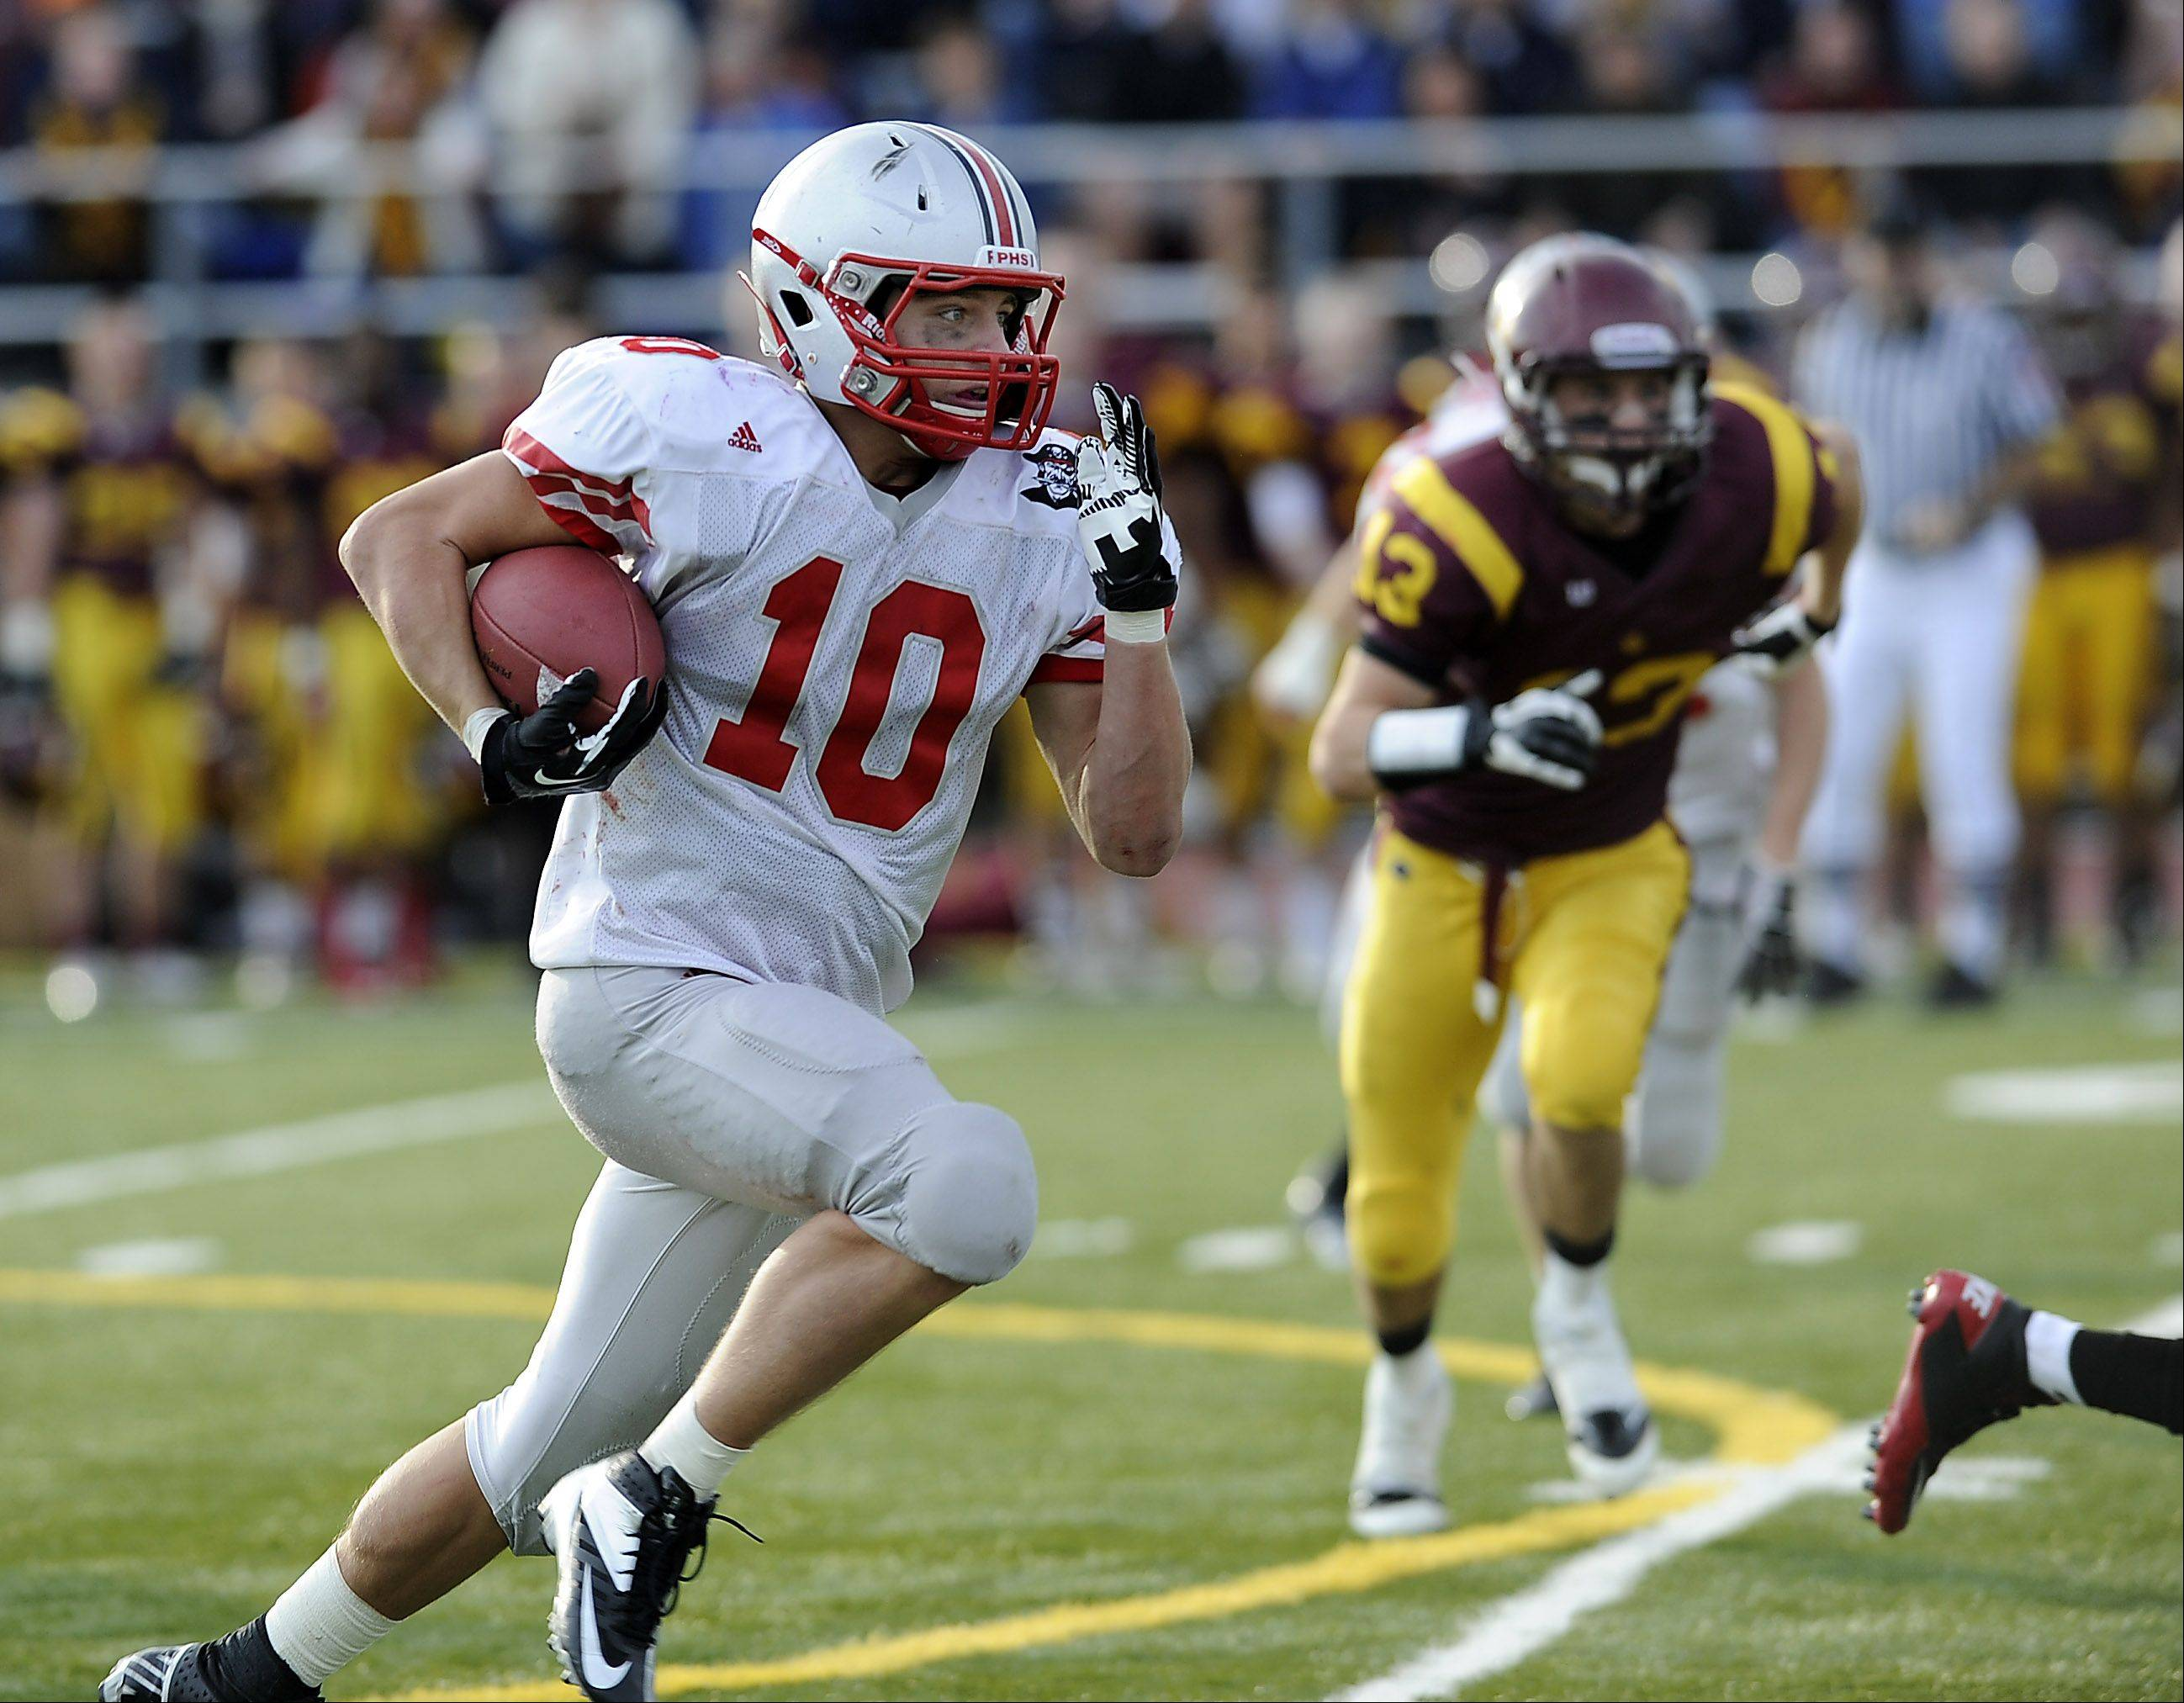 Palatine's Cam Kuksa runs back a kick-off return for a touchdown in the third quarter.